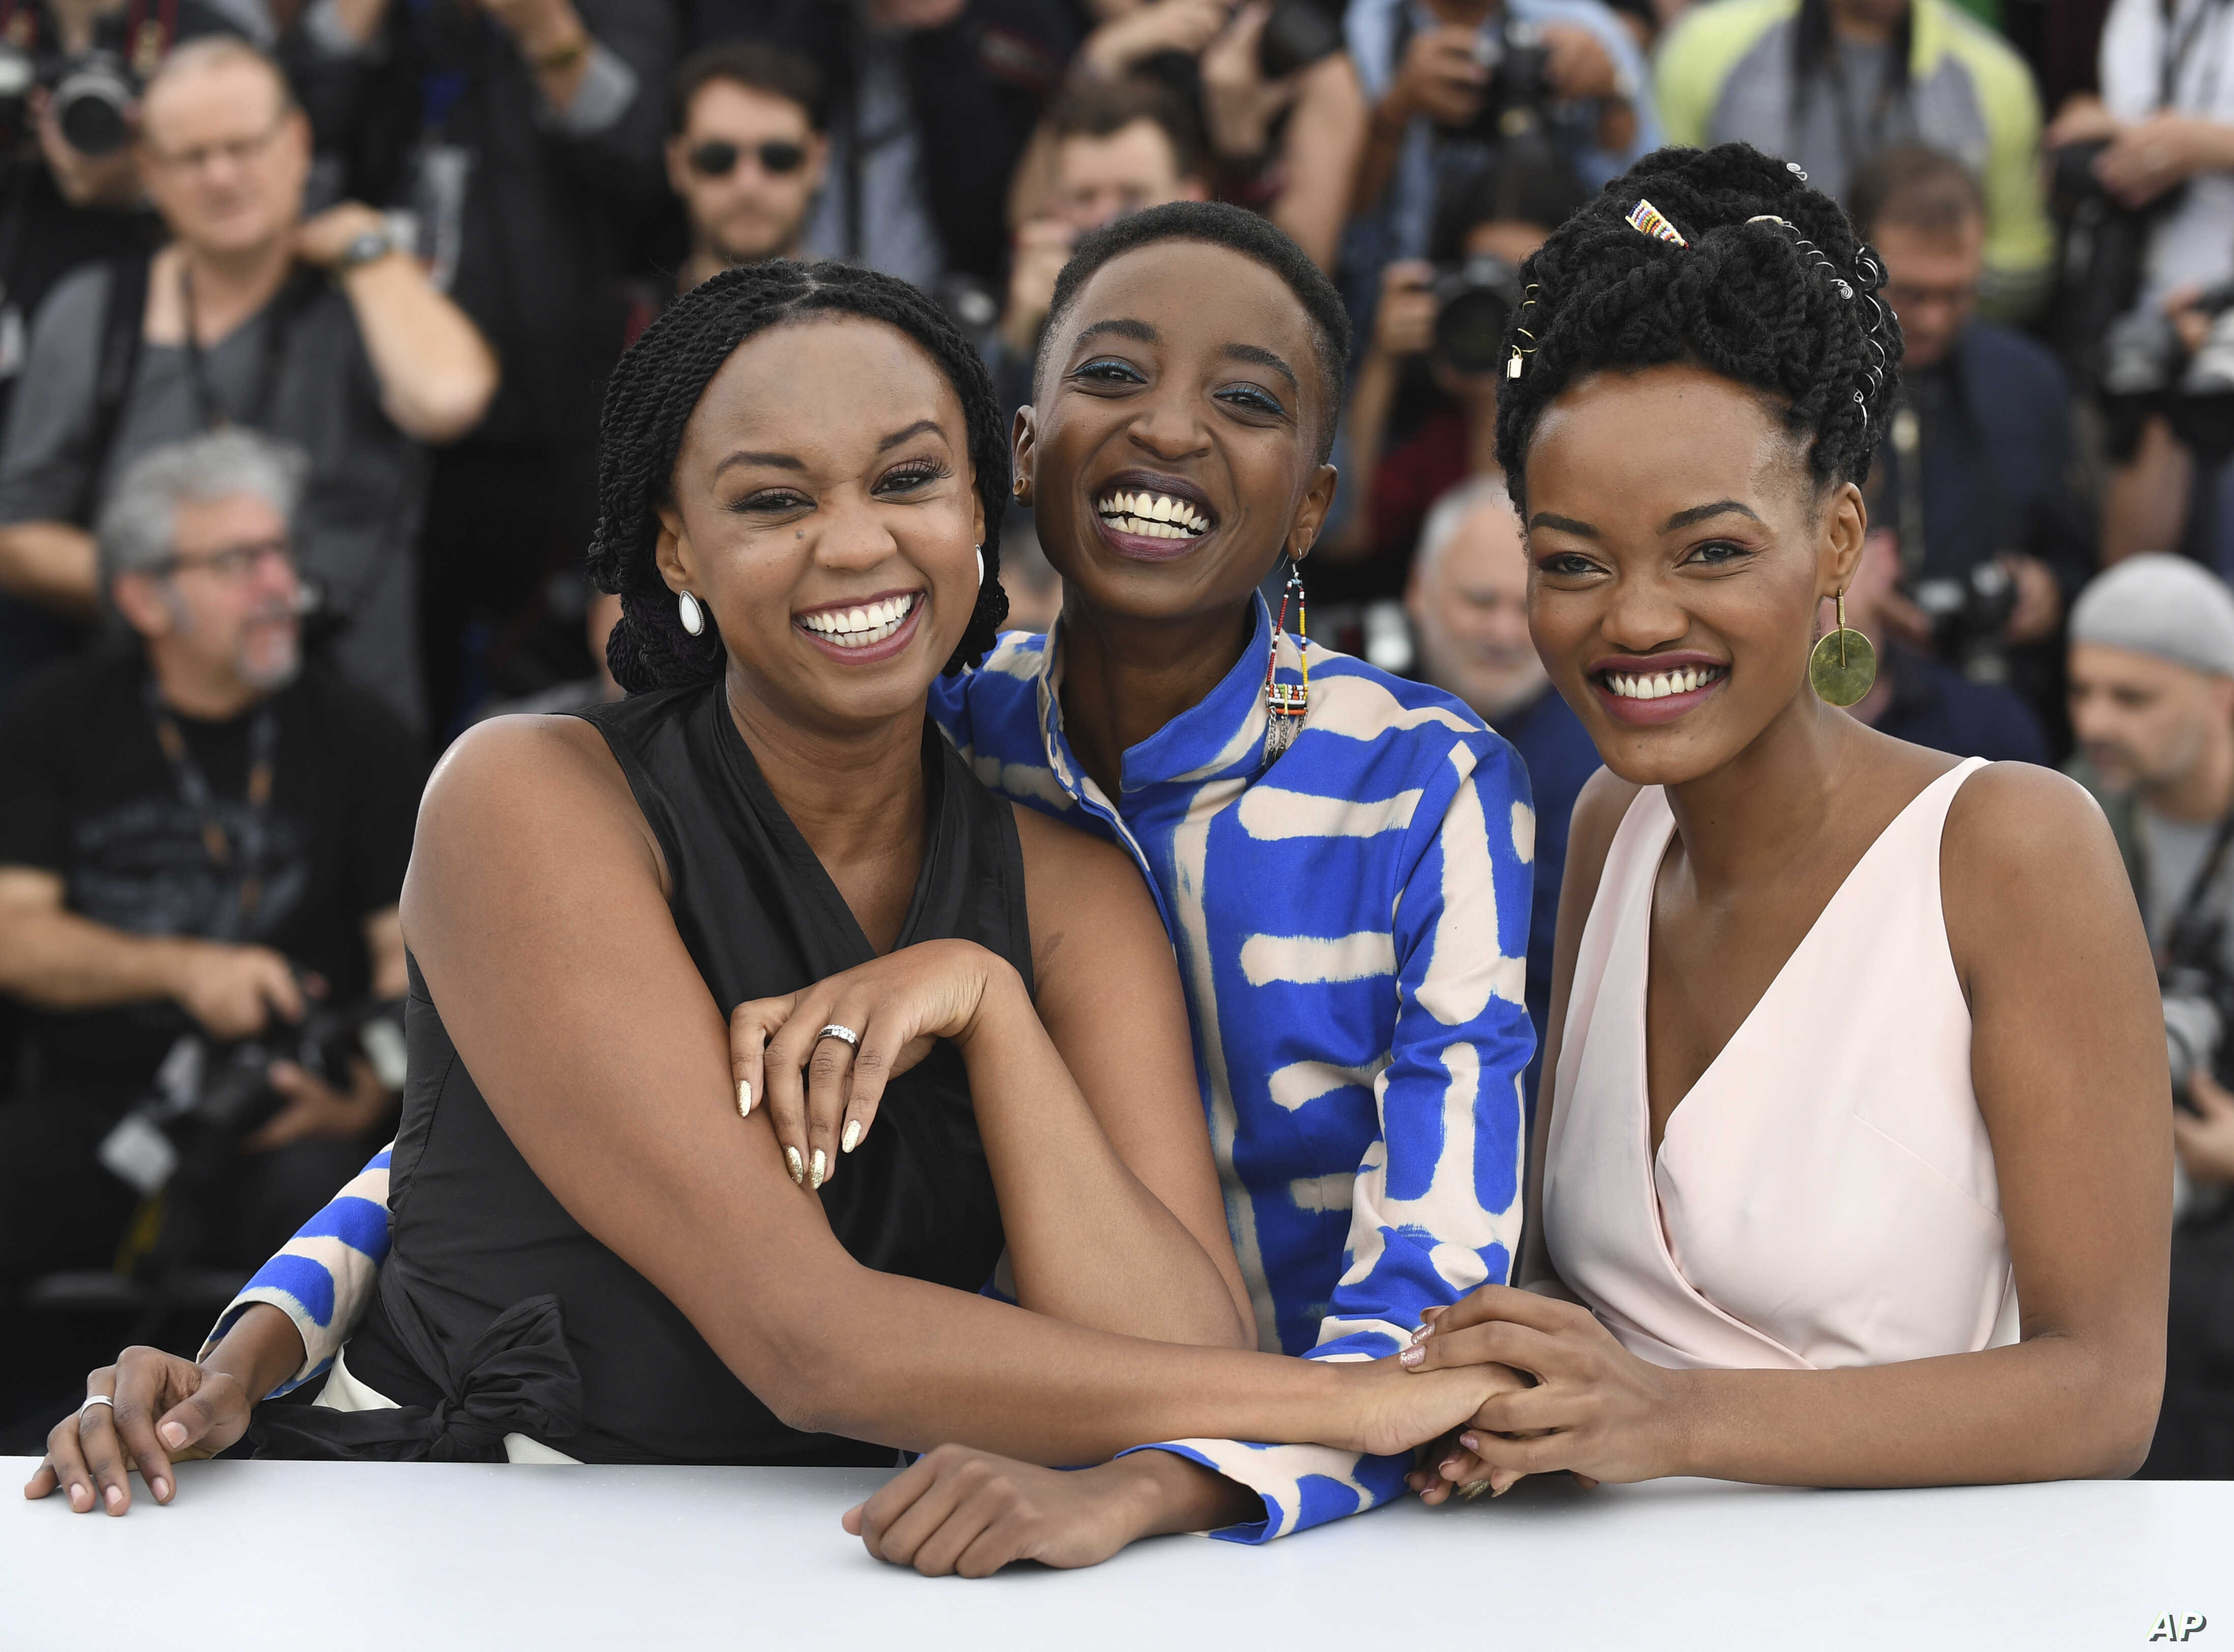 Kenya Lifts Ban on Lesbian Love Tale, in Time for Oscar